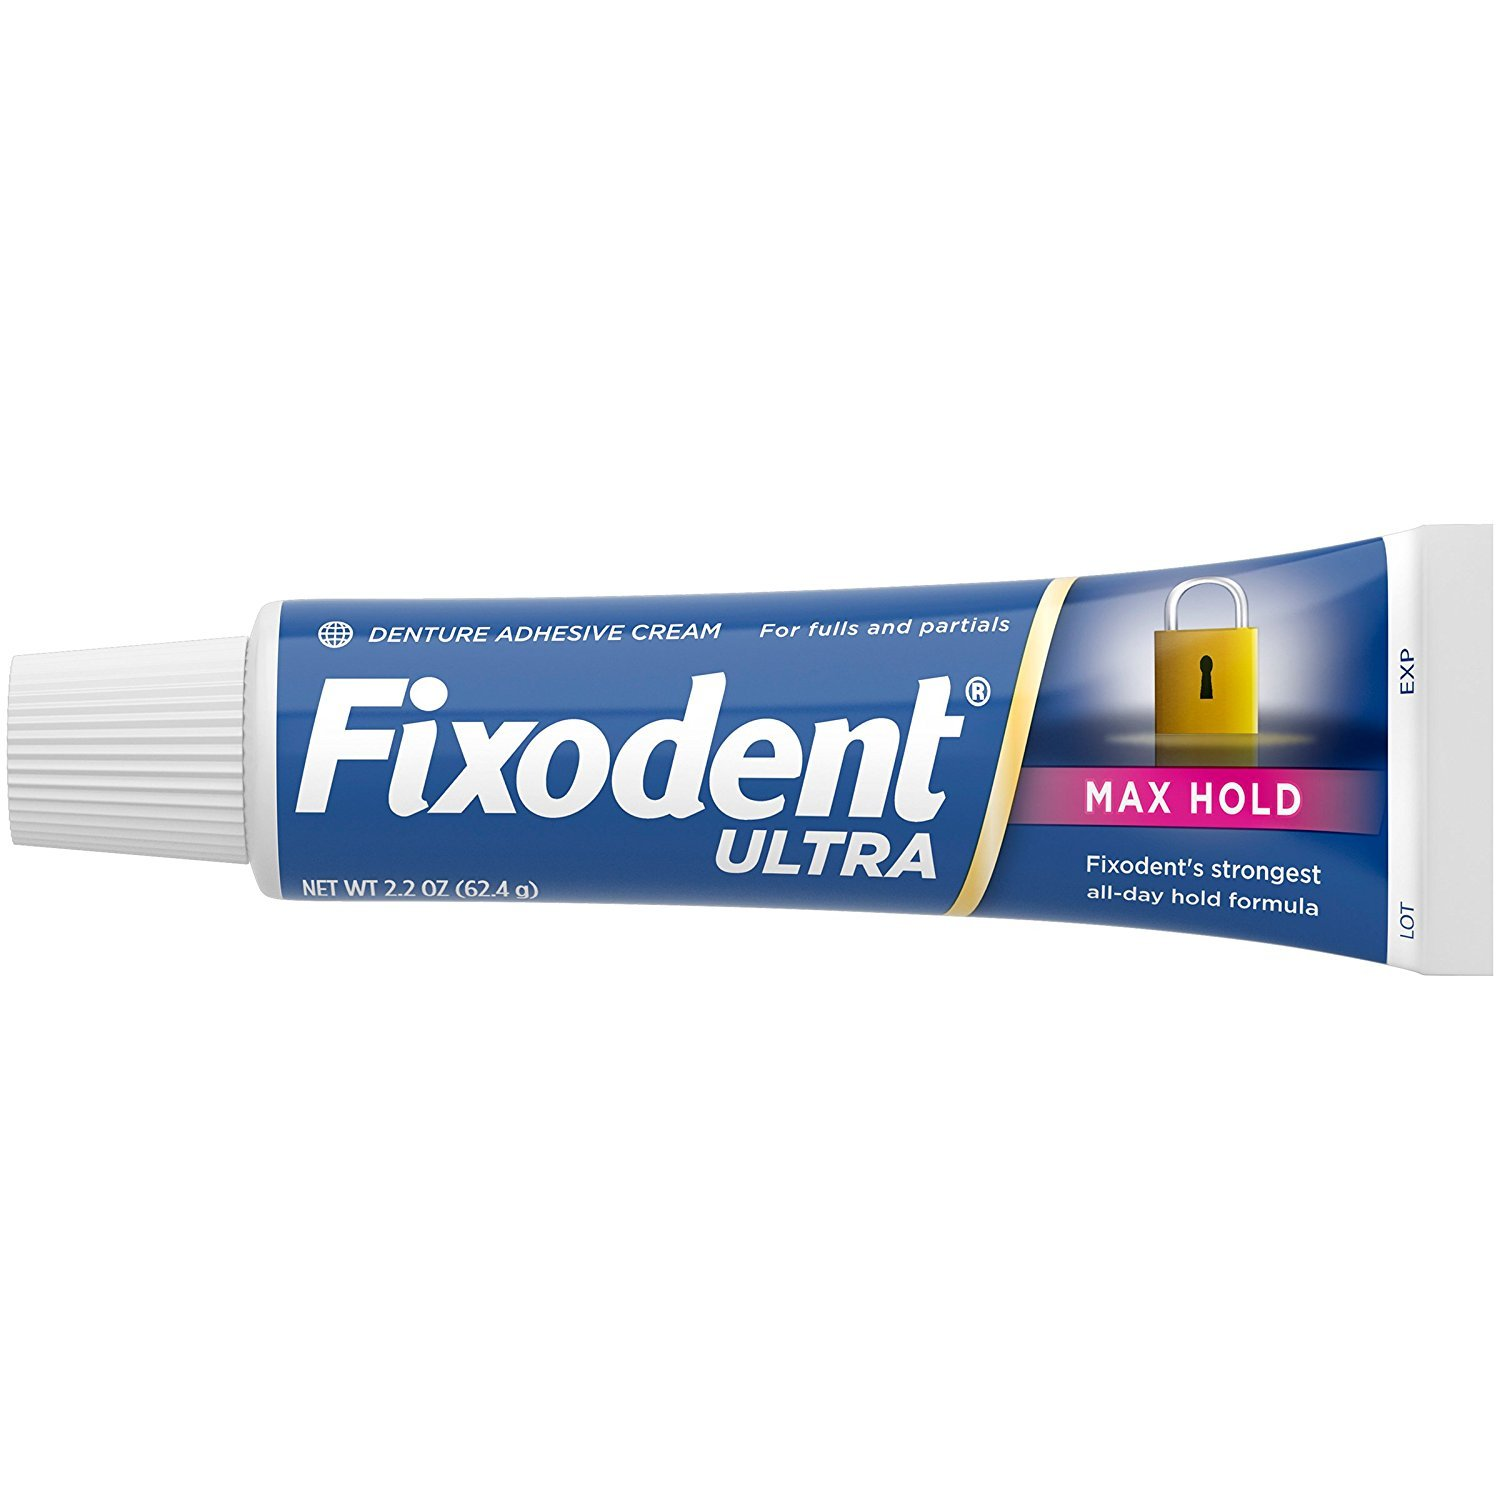 Fixodent Fixodent Ultra Max Hold Dental Adhesive, 2.2 Ounce - Pack of 2